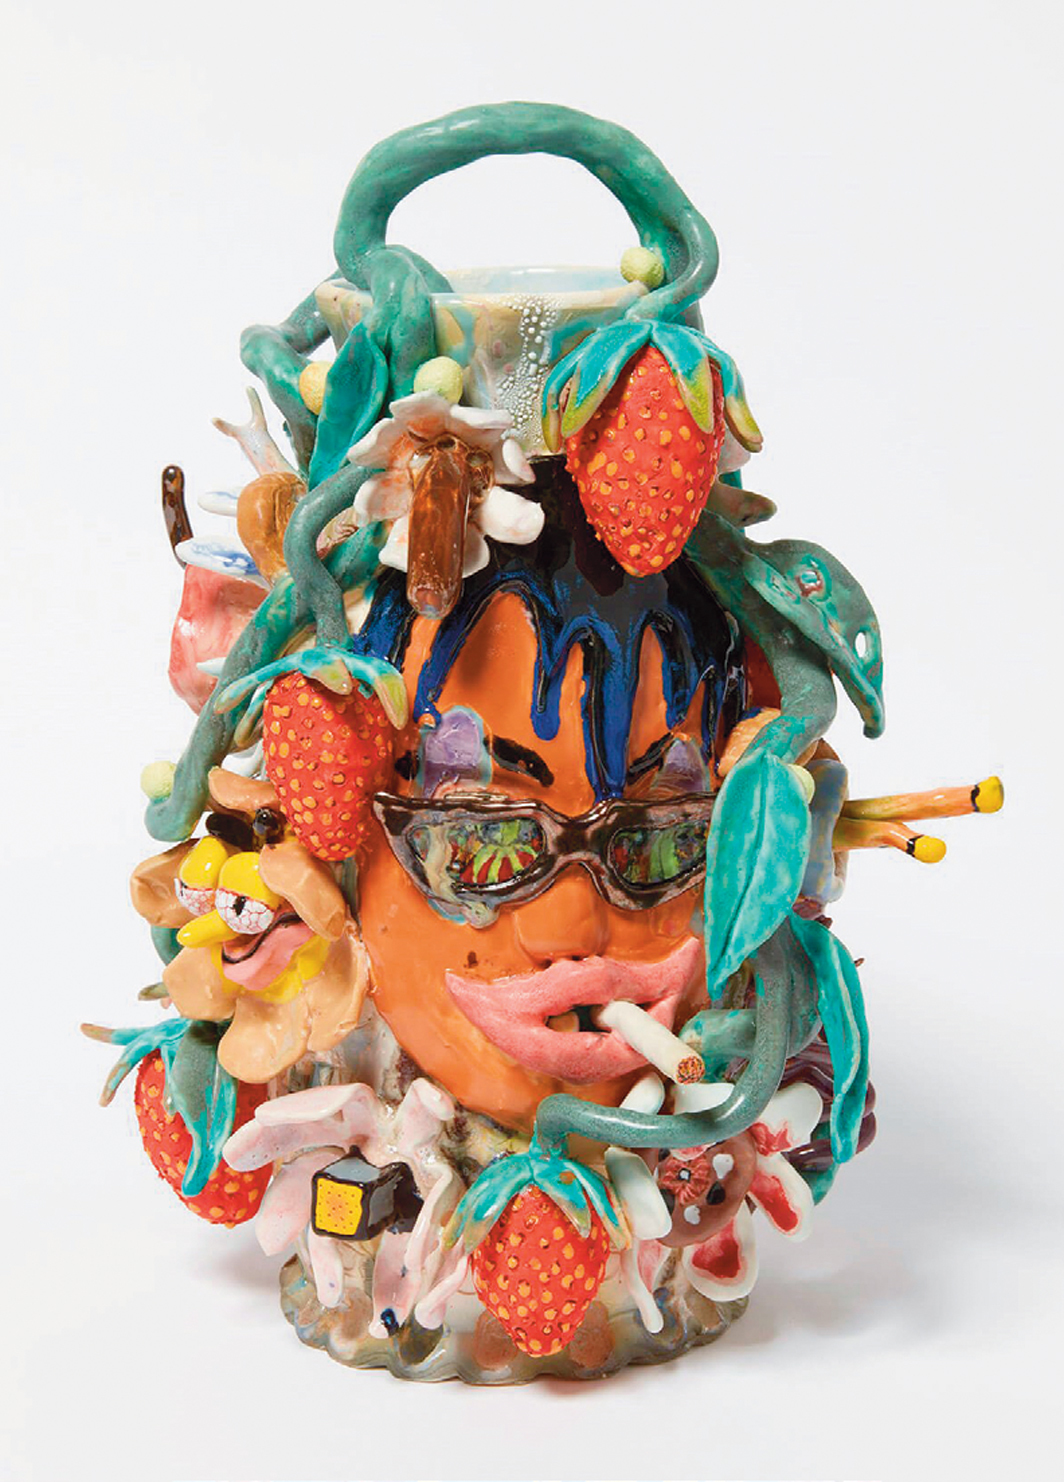 "Sharif Farrag, Sore Eyes, Tasting Strawberries, 2020, glazed porcelain, 13 1⁄2 × 10 × 10""."